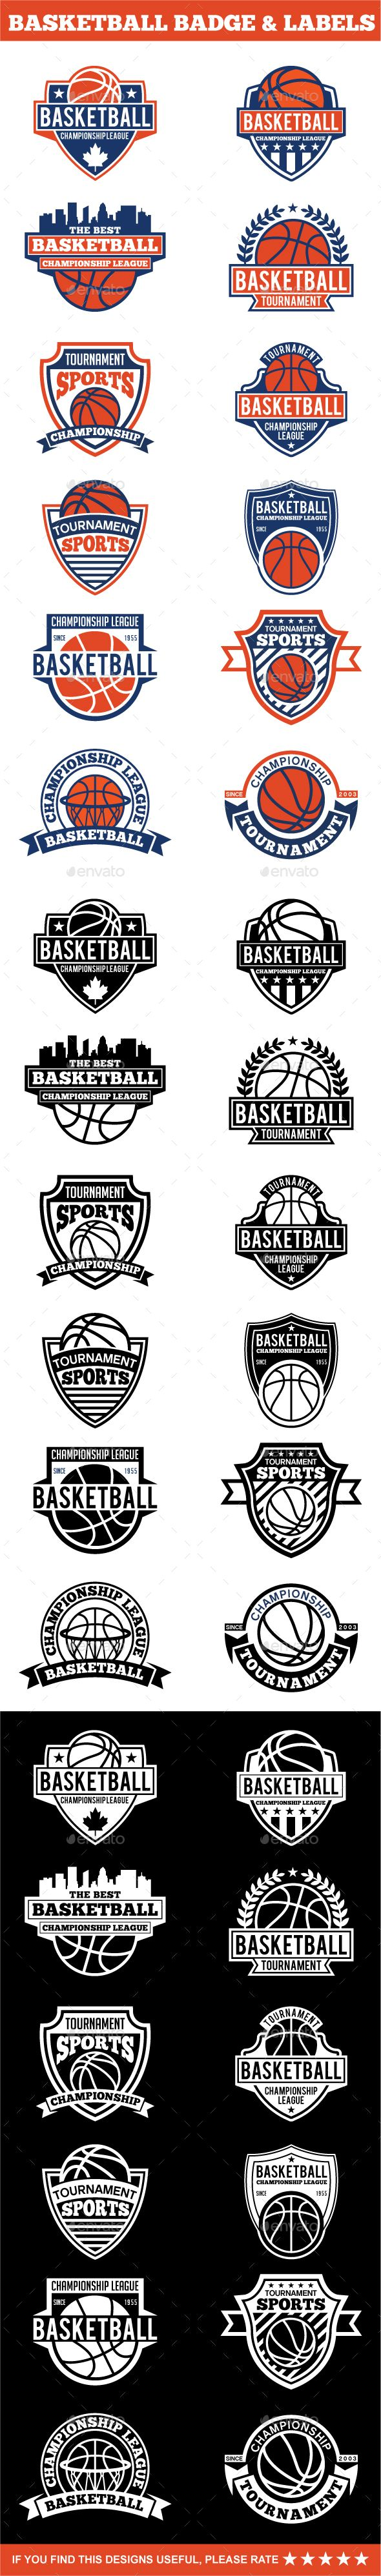 Basketball Badges & Stickers Template Vector EPS, AI. Download here: http://graphicriver.net/item/basketball-badges-stickers-vol1/15335099?ref=ksioks